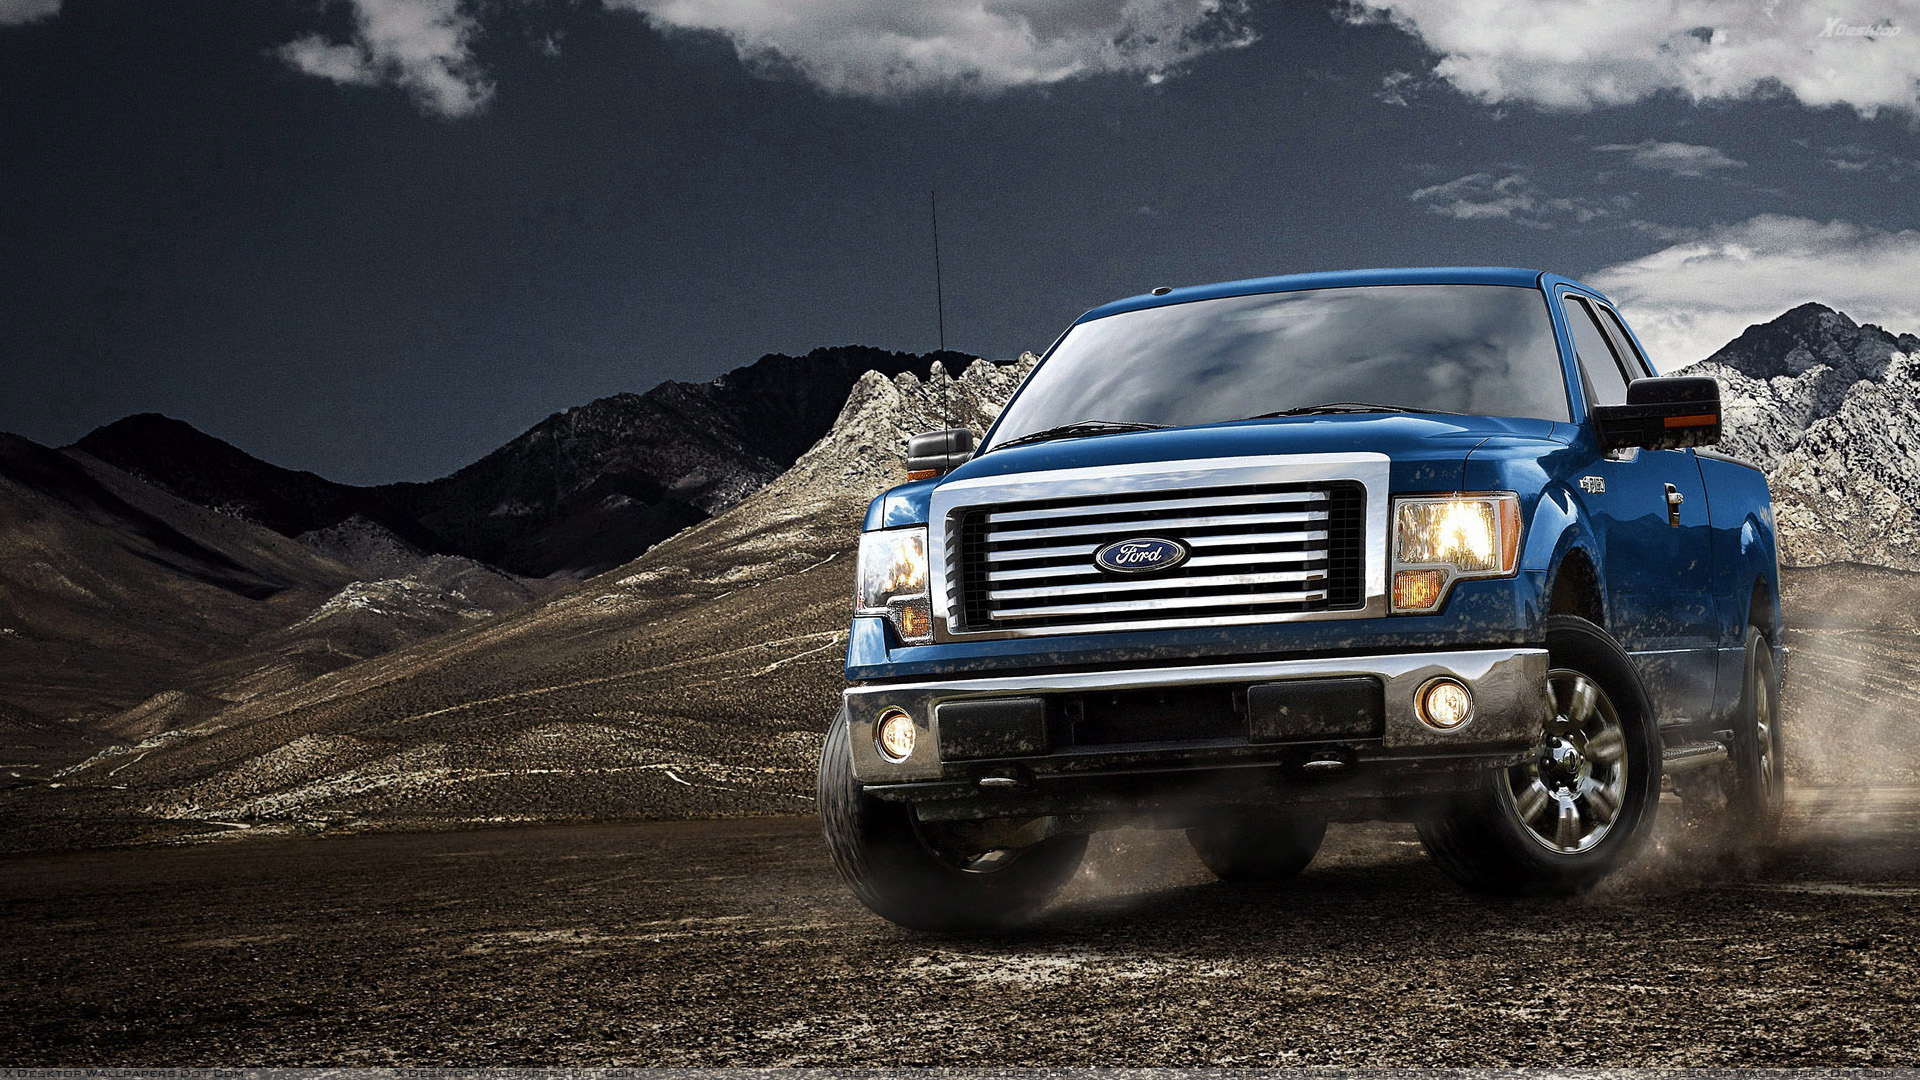 2012 Ford F-150 in Blue Near Mountains Wallpaper